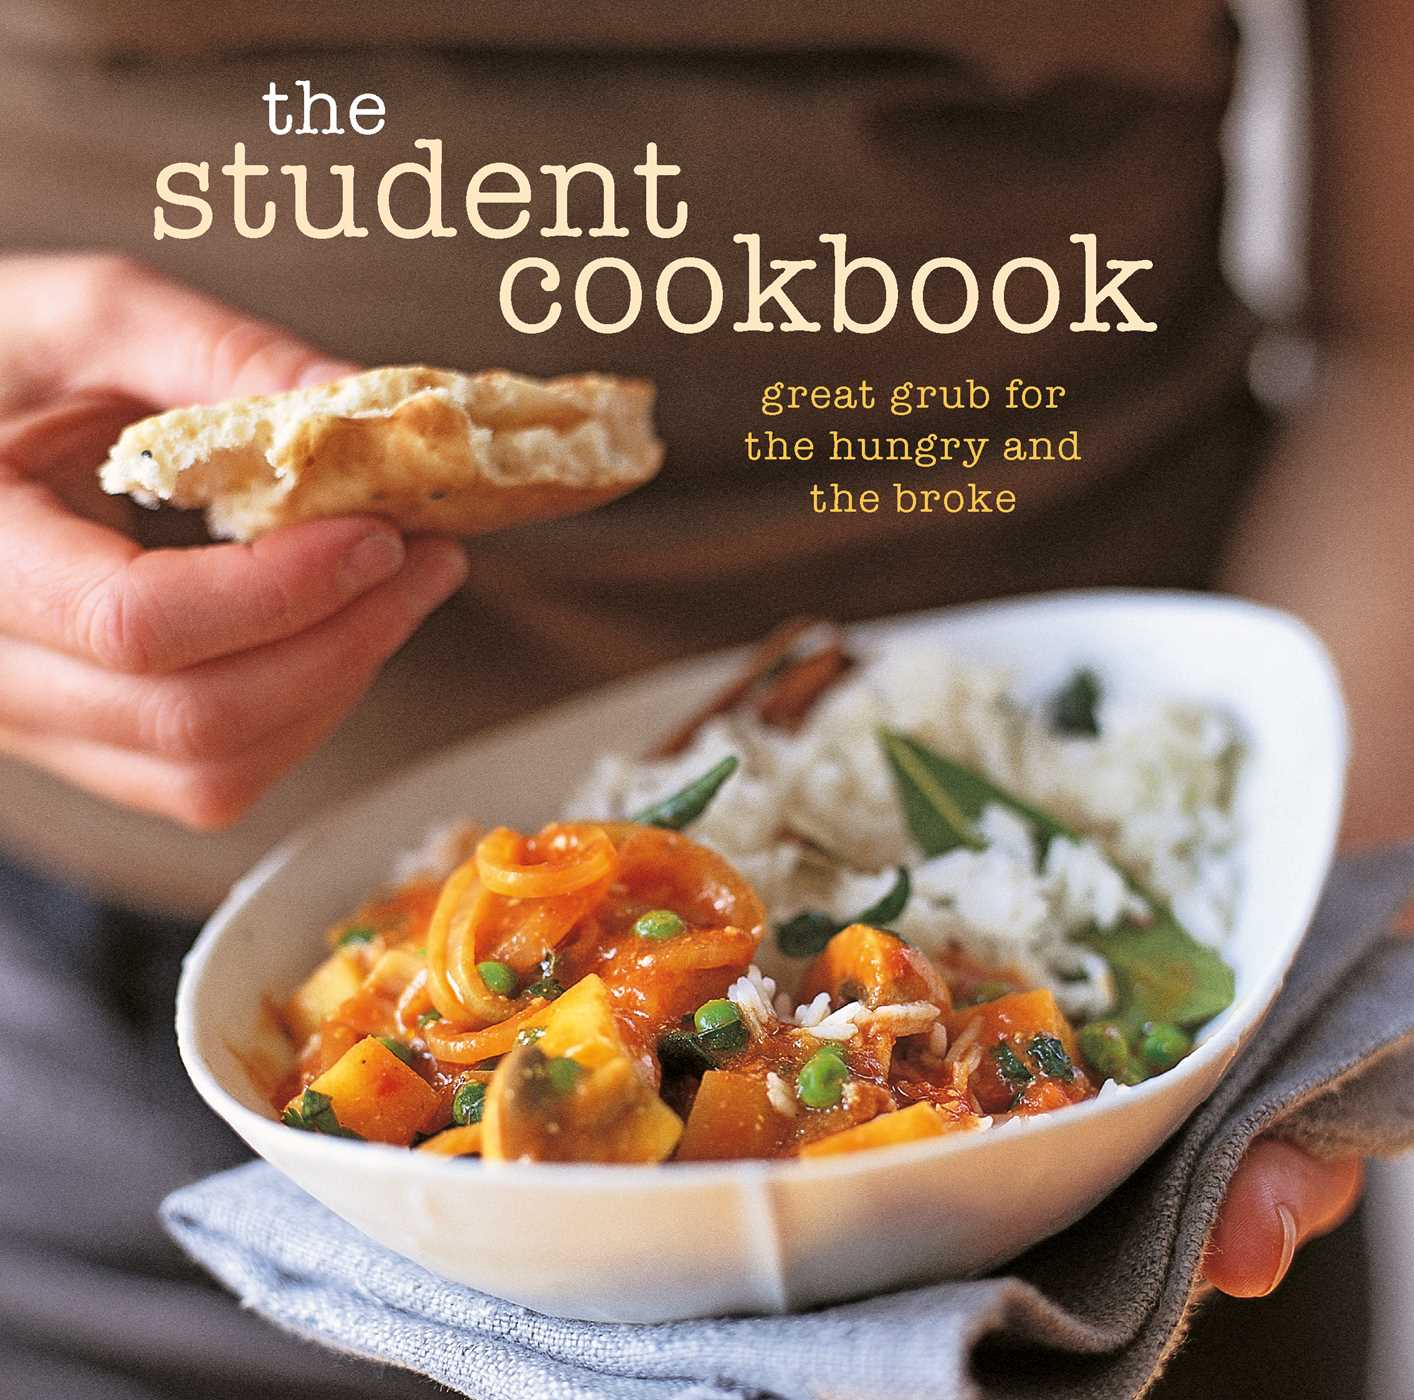 The student cookbook 9781849758604 hr